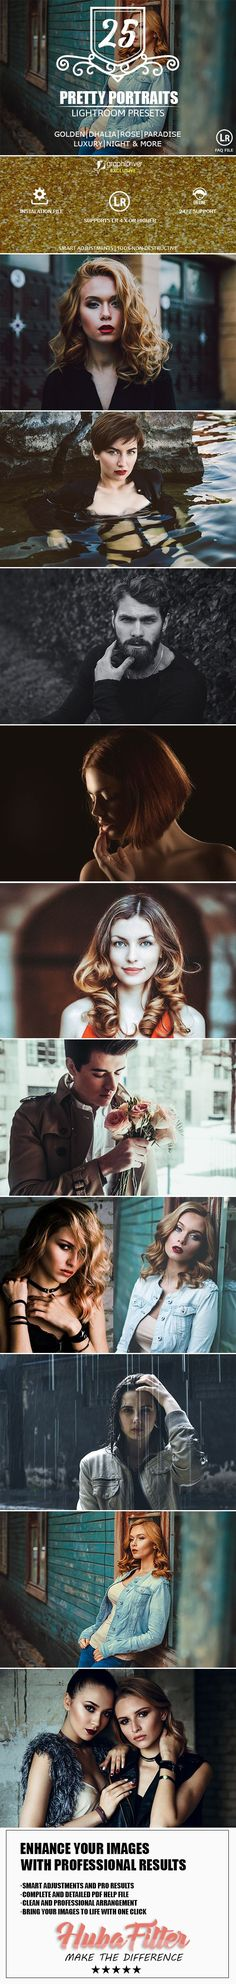 25 Pretty Portraits Lightroom Presets by HubaFilter About 25 Pretty PortraitsLightroom Presets:25 Pretty PortraitsLightroom Presetsallows you to produce your own signature style and